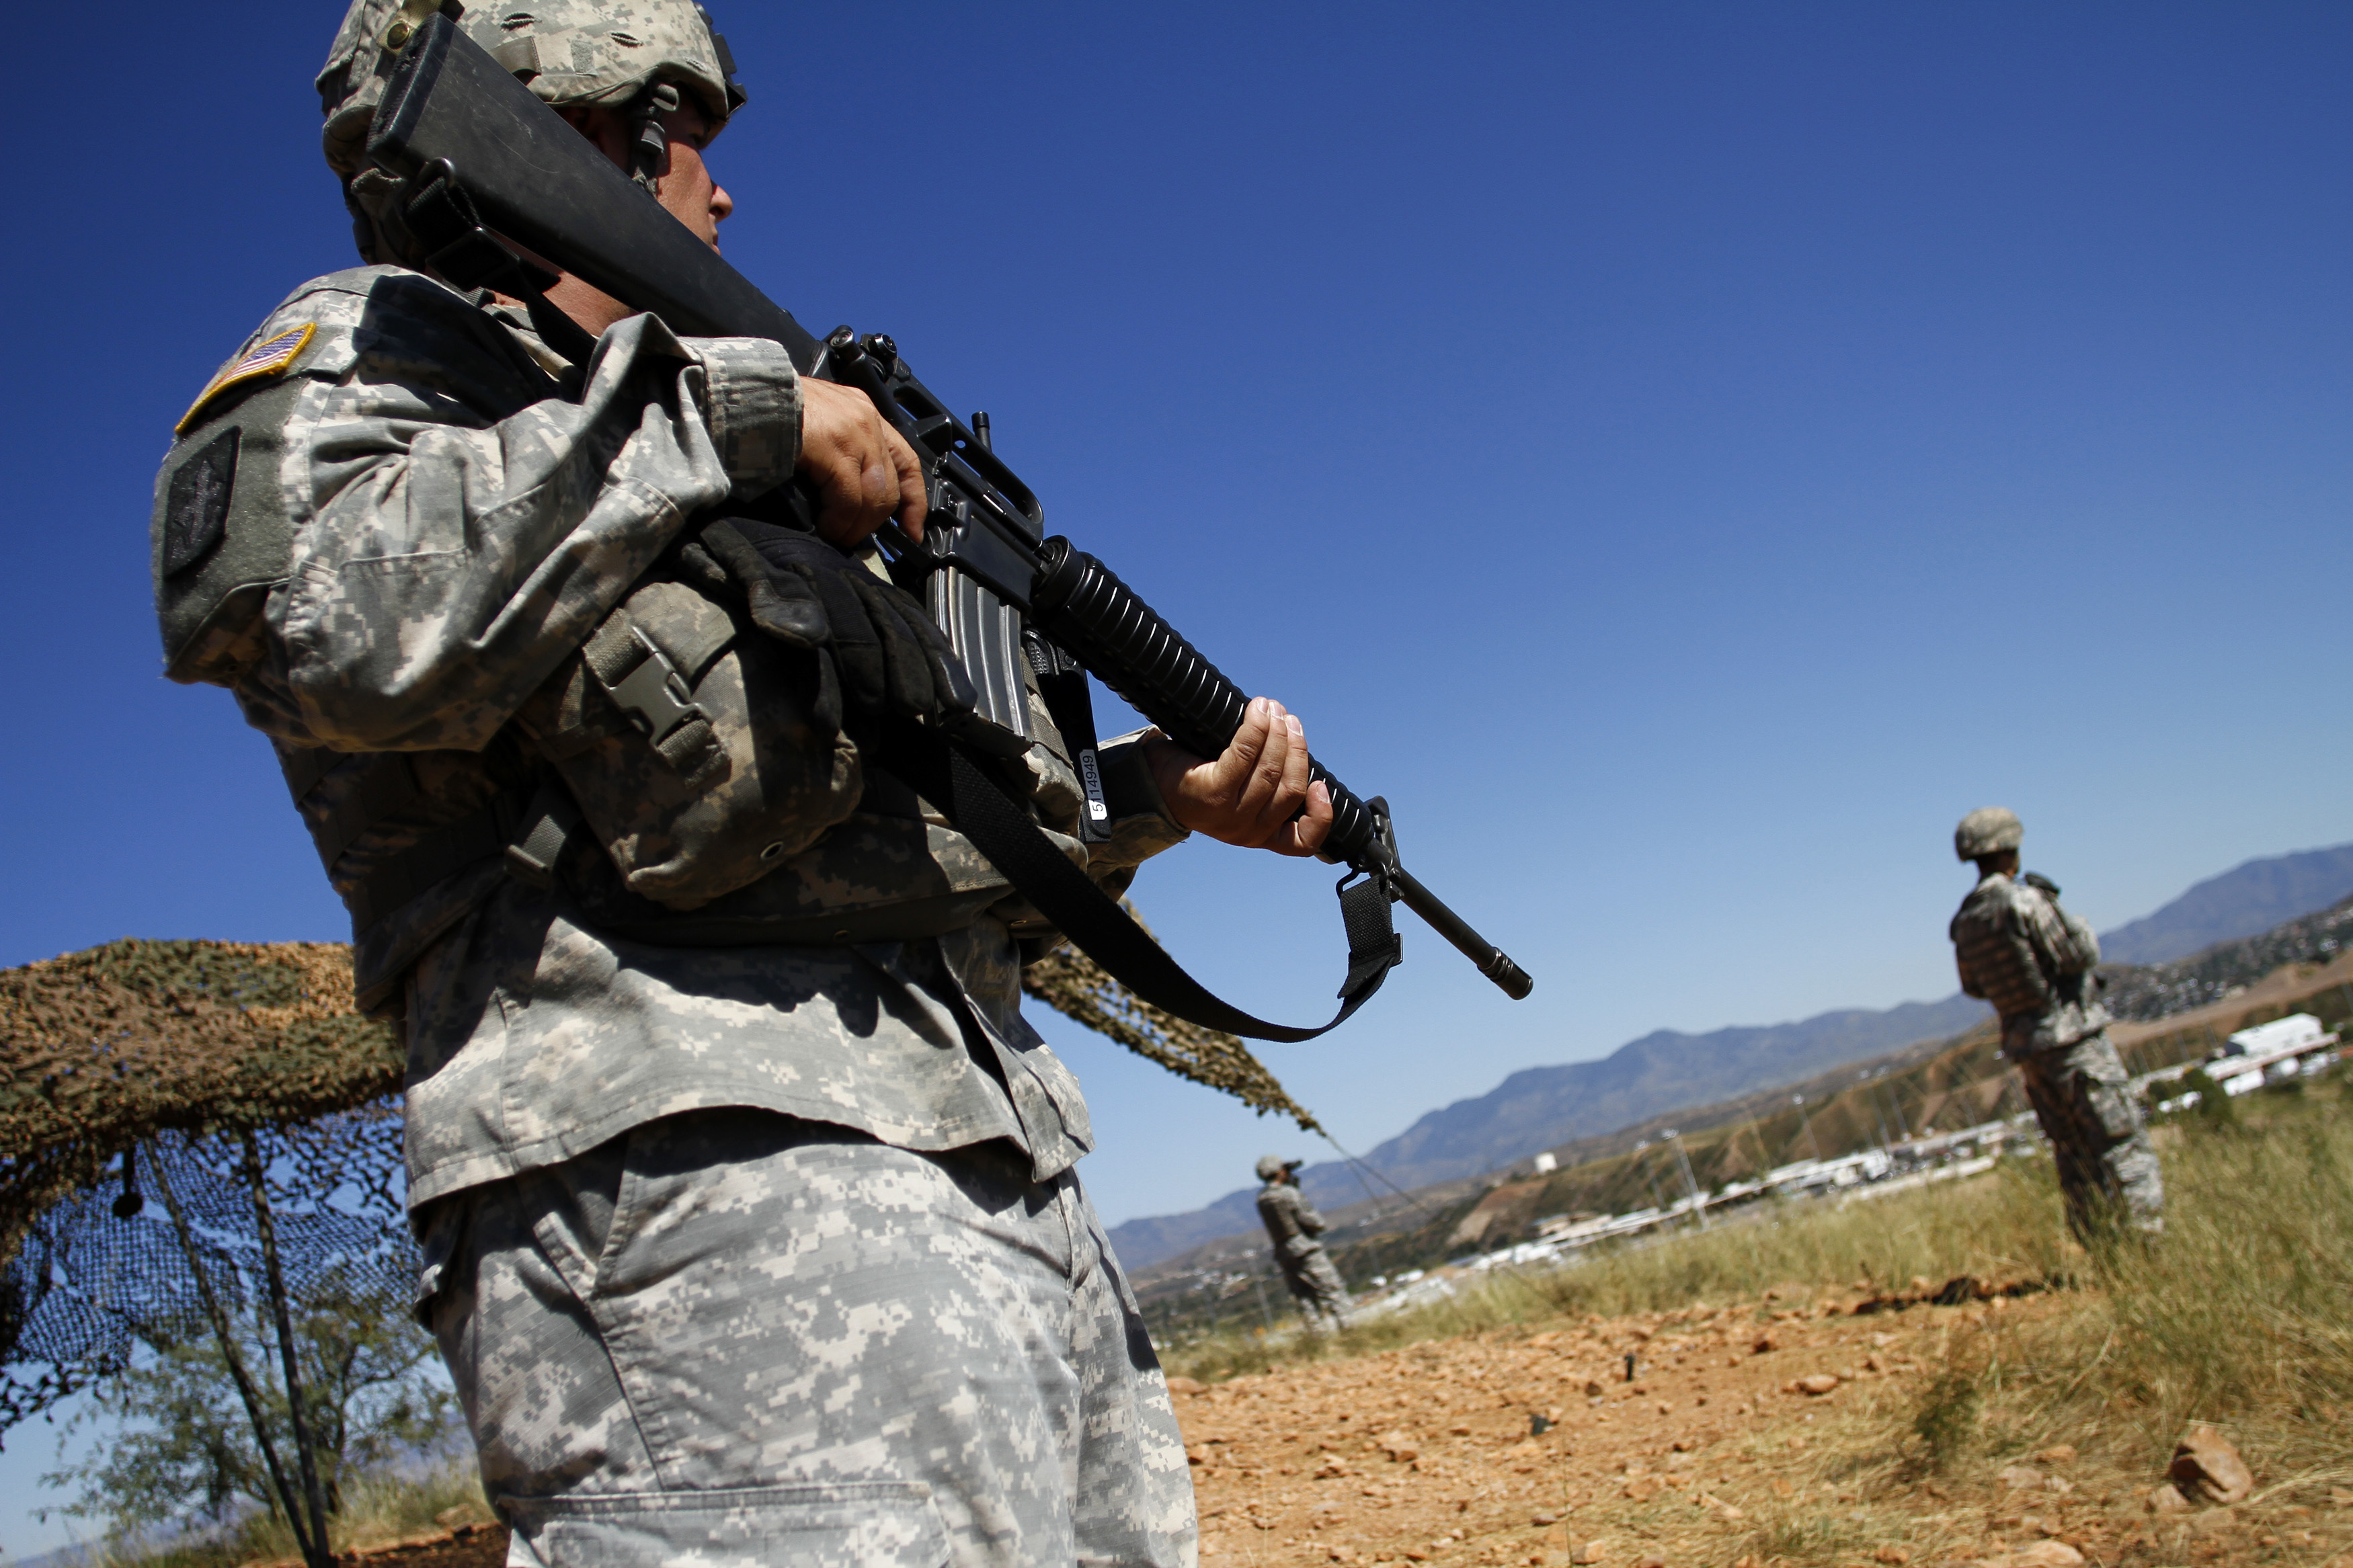 U.S. National Guard troops patrol along the U.S.-Mexico border in Nogales, Ariz. on Oct. 8, 2010.